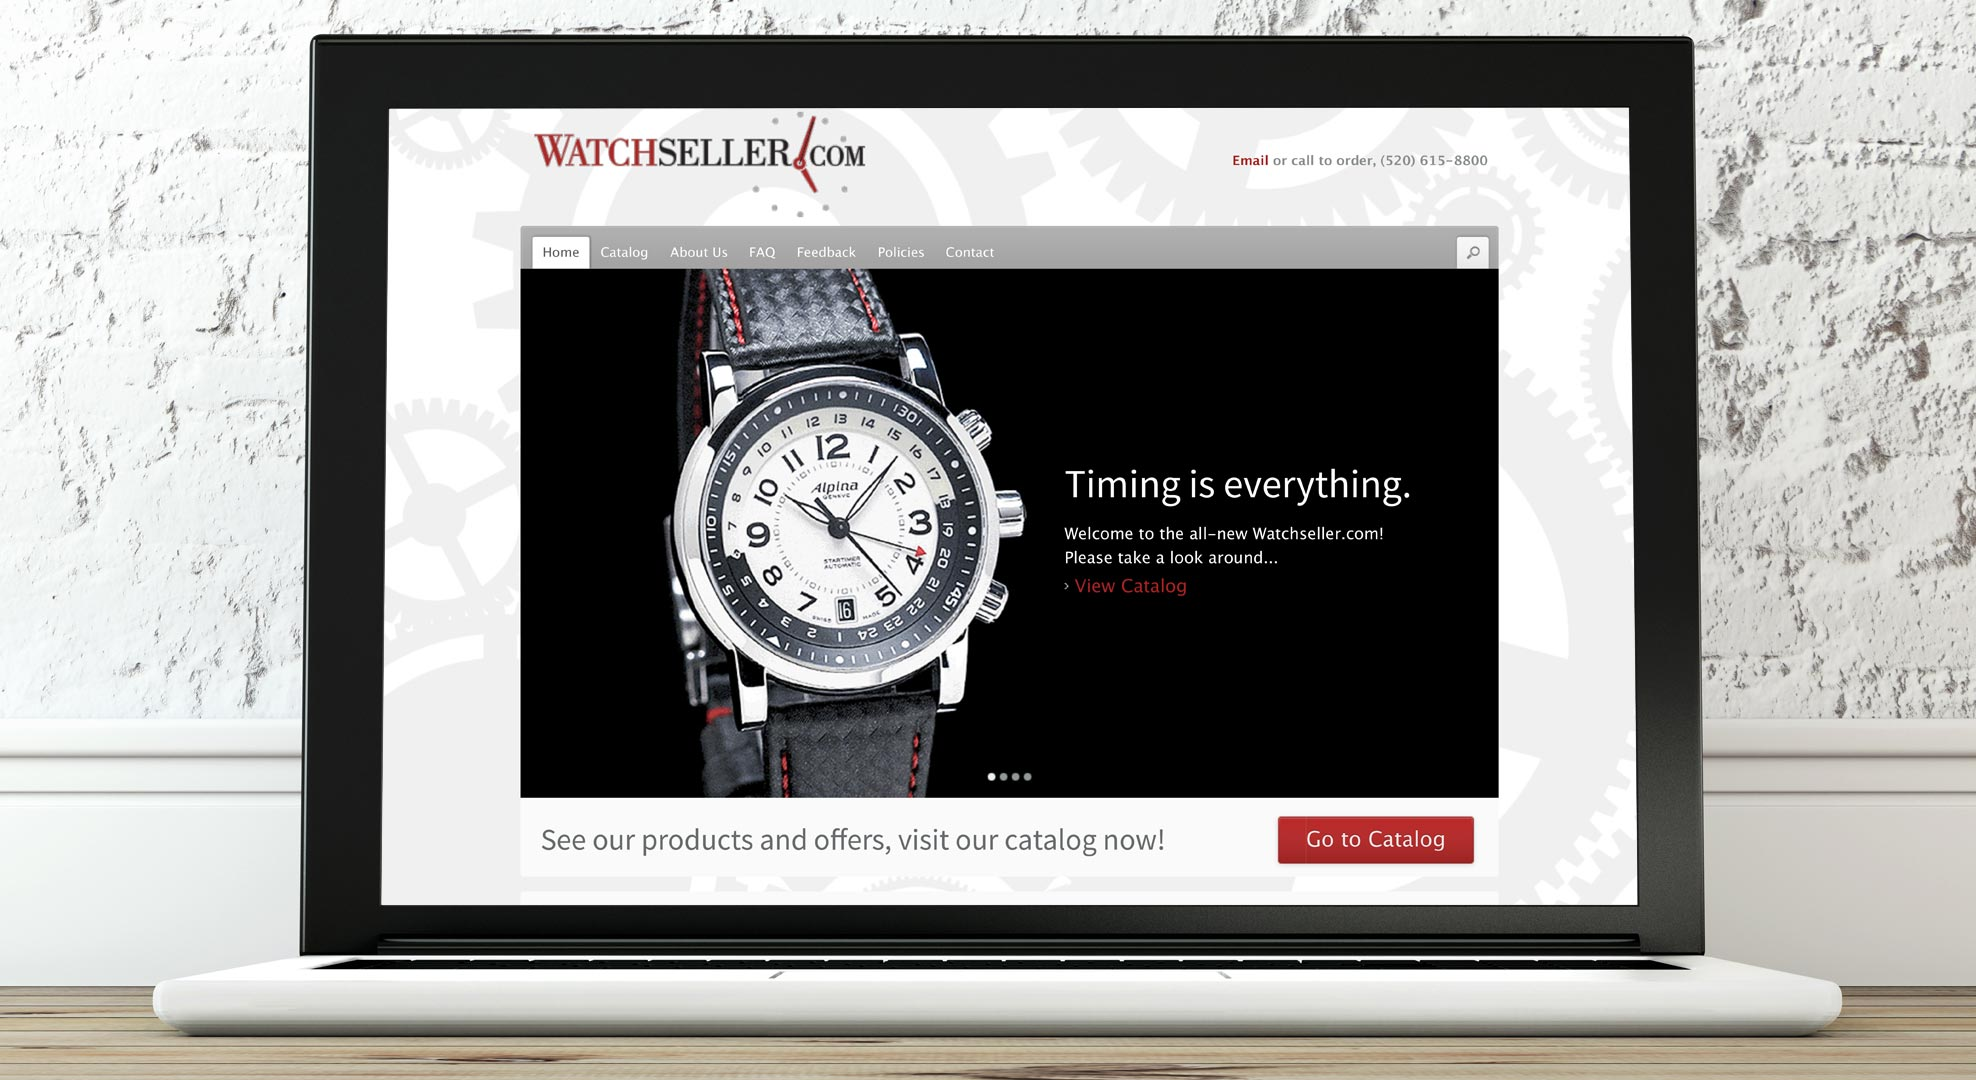 As a leader in the wrist watch sales industry, an effective website was an absolute necessity for WatchSeller. They came to Regole Design with a problem: they had an existing website that was underperforming—both in converting visitors to leads and in ease of use for site administrators.